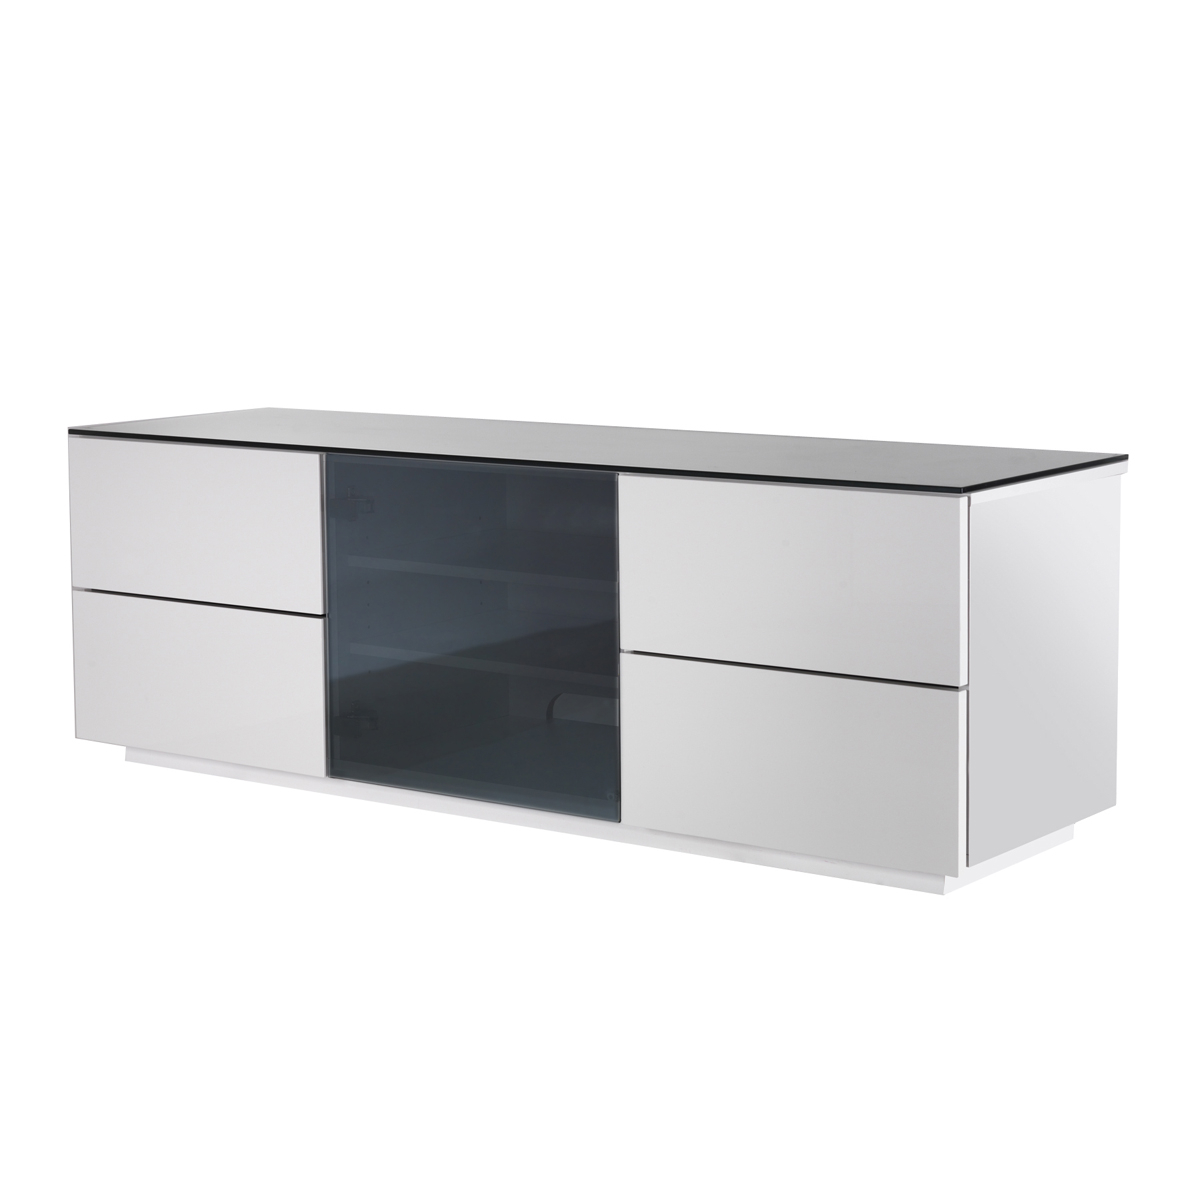 Widely Used Shiny Black Tv Stands Intended For Ikea Tv Stand Hack Modern Italian Bedroom Set High Gloss Black White (View 20 of 20)